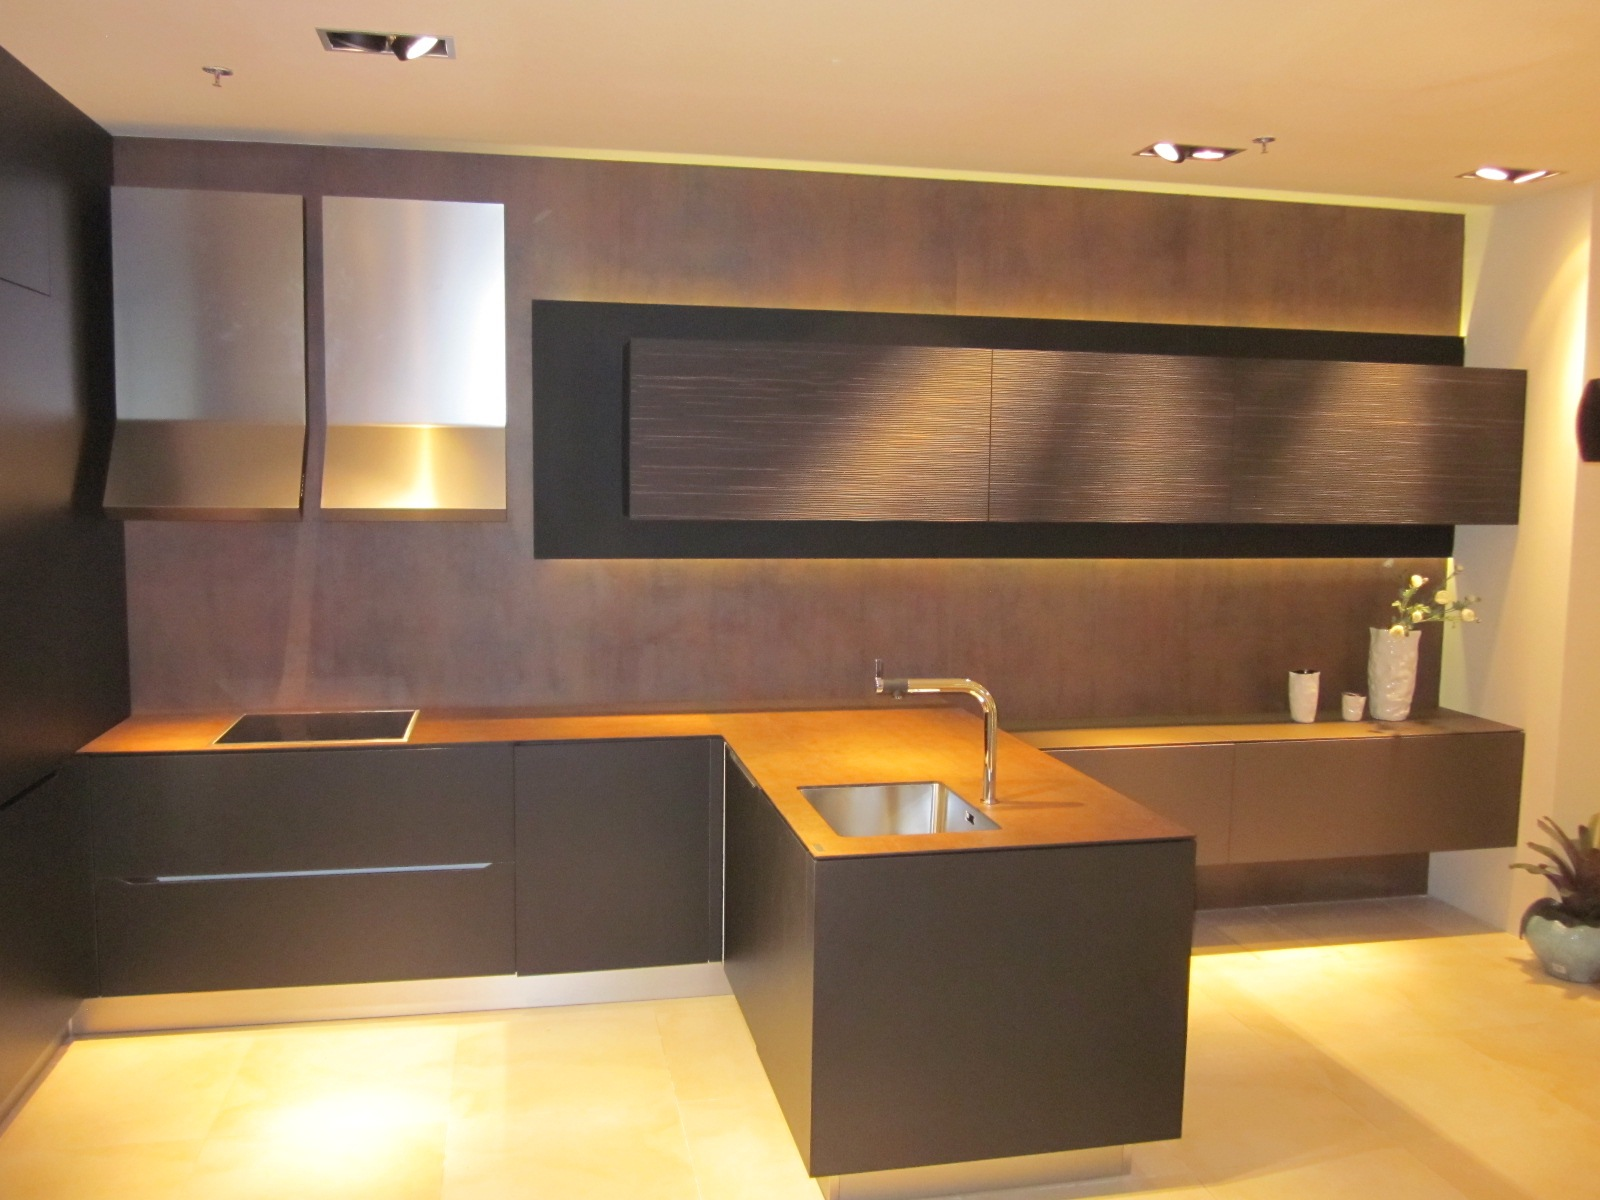 Neolith Iron Corten Countertop With A 10mm 3 8 Slab Eased Edge Copper Full Wall Cladding 5mm 16 Slabs